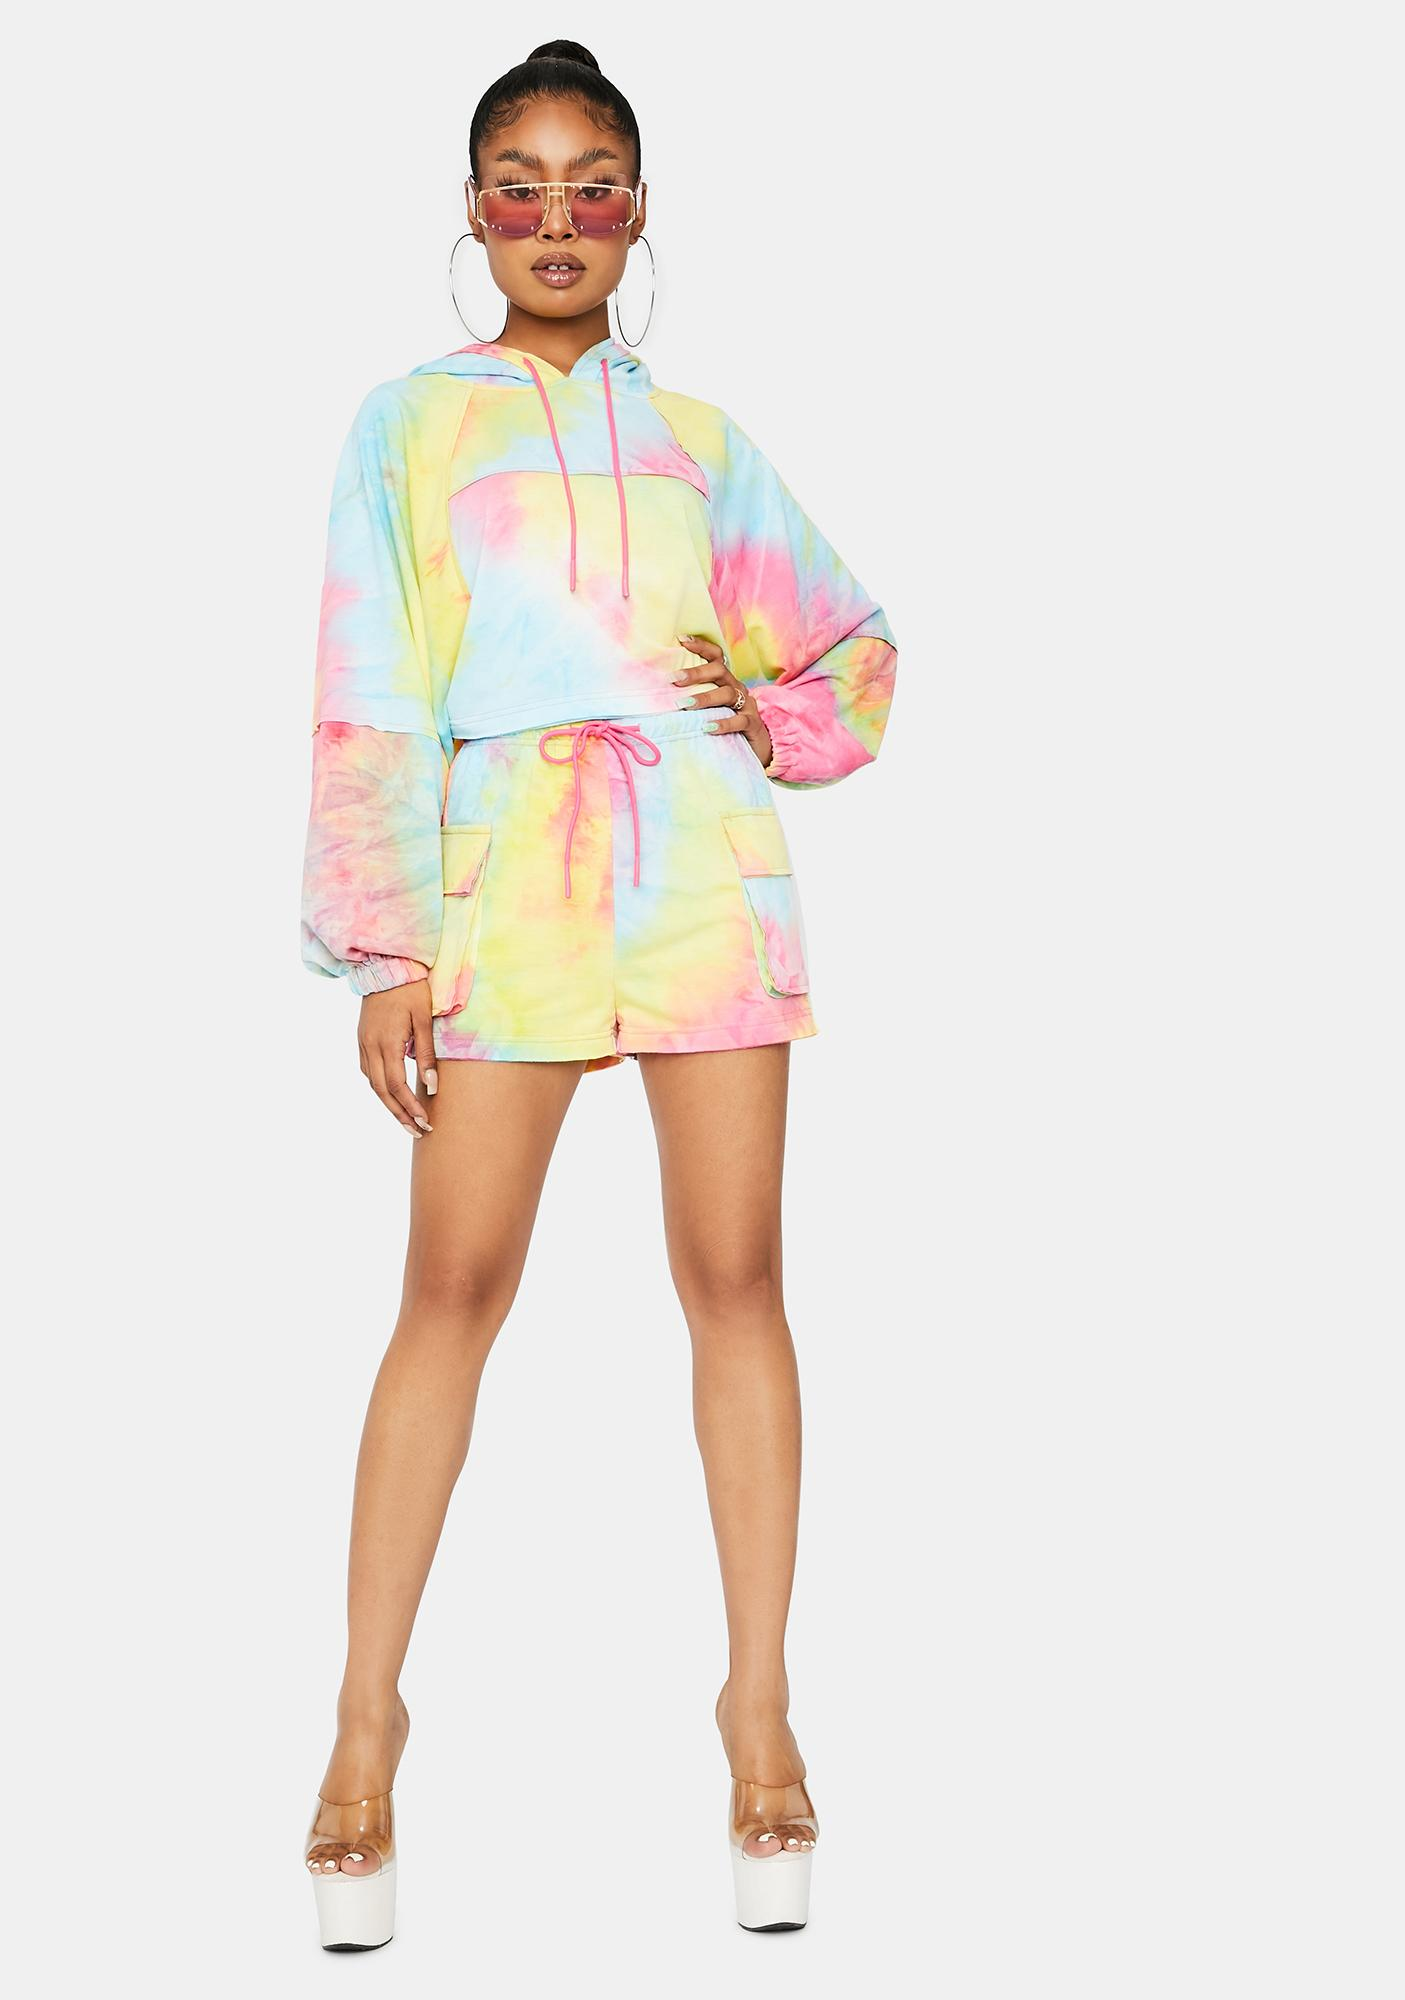 Stay Chillin' Hoodie Sweat Short Set